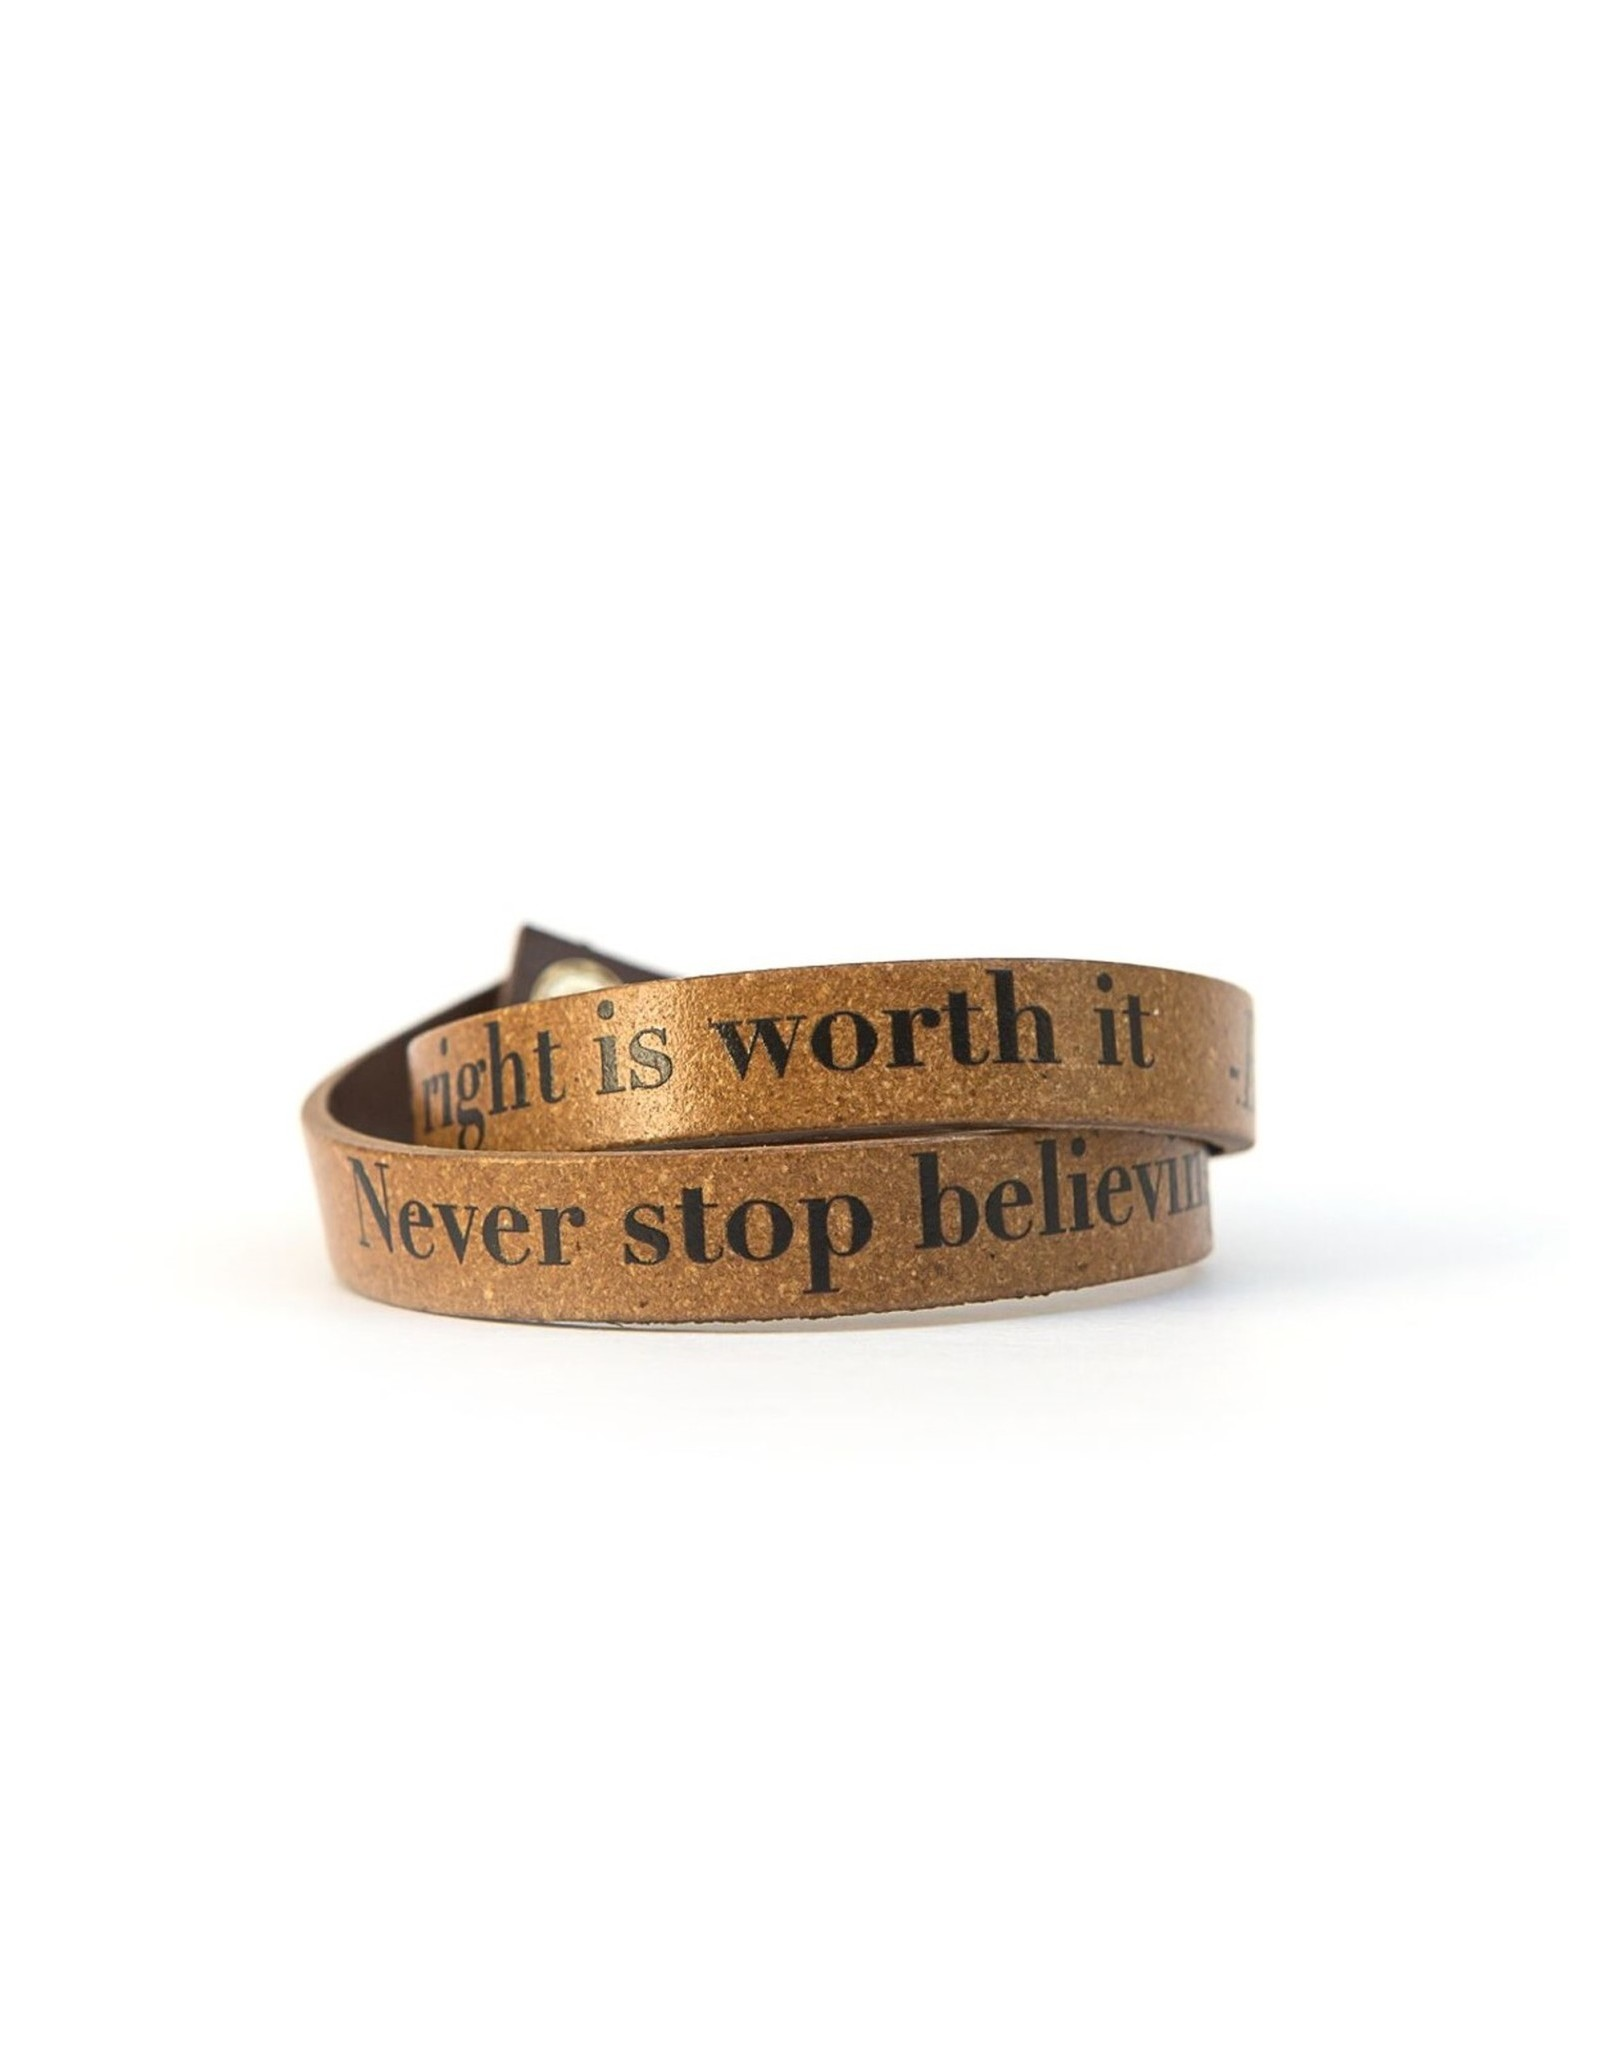 Leather Enscribed Wrap Bracelet Fight for What's Right